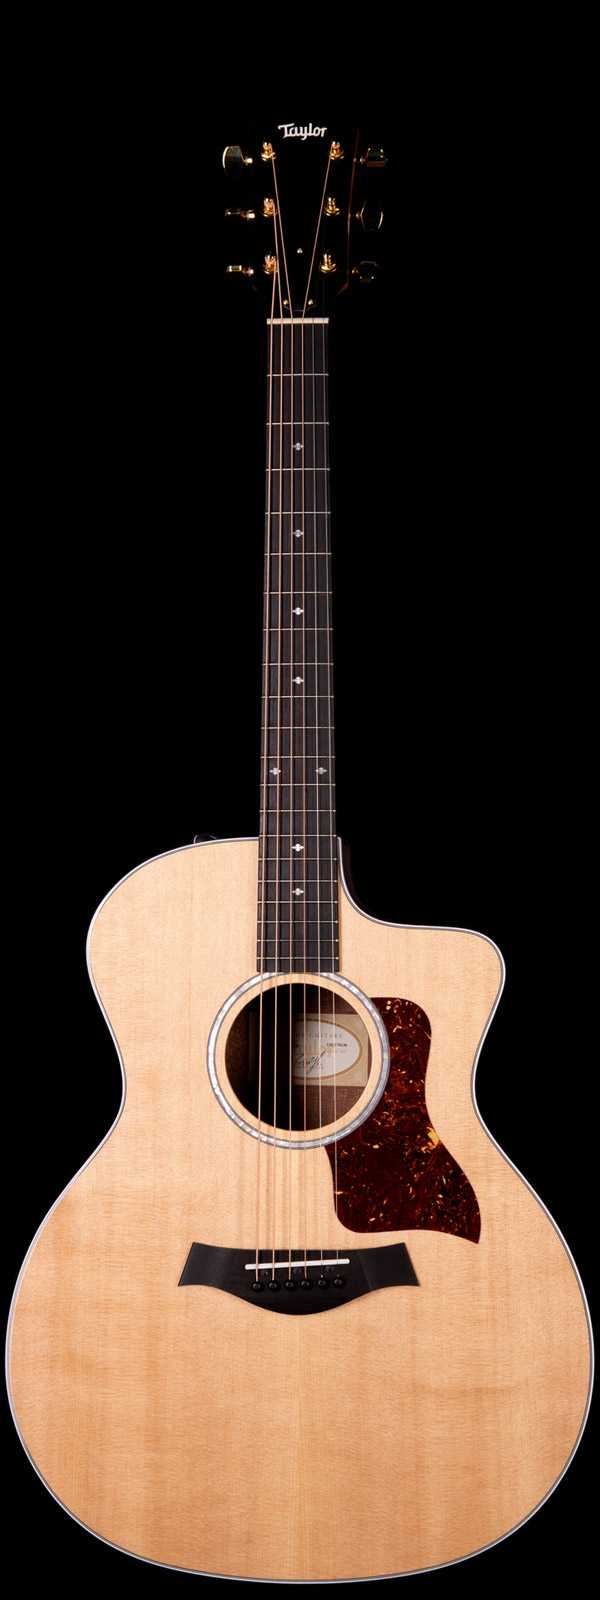 Taylor 214ce Black Limba Limited Edition Acoustic Electric